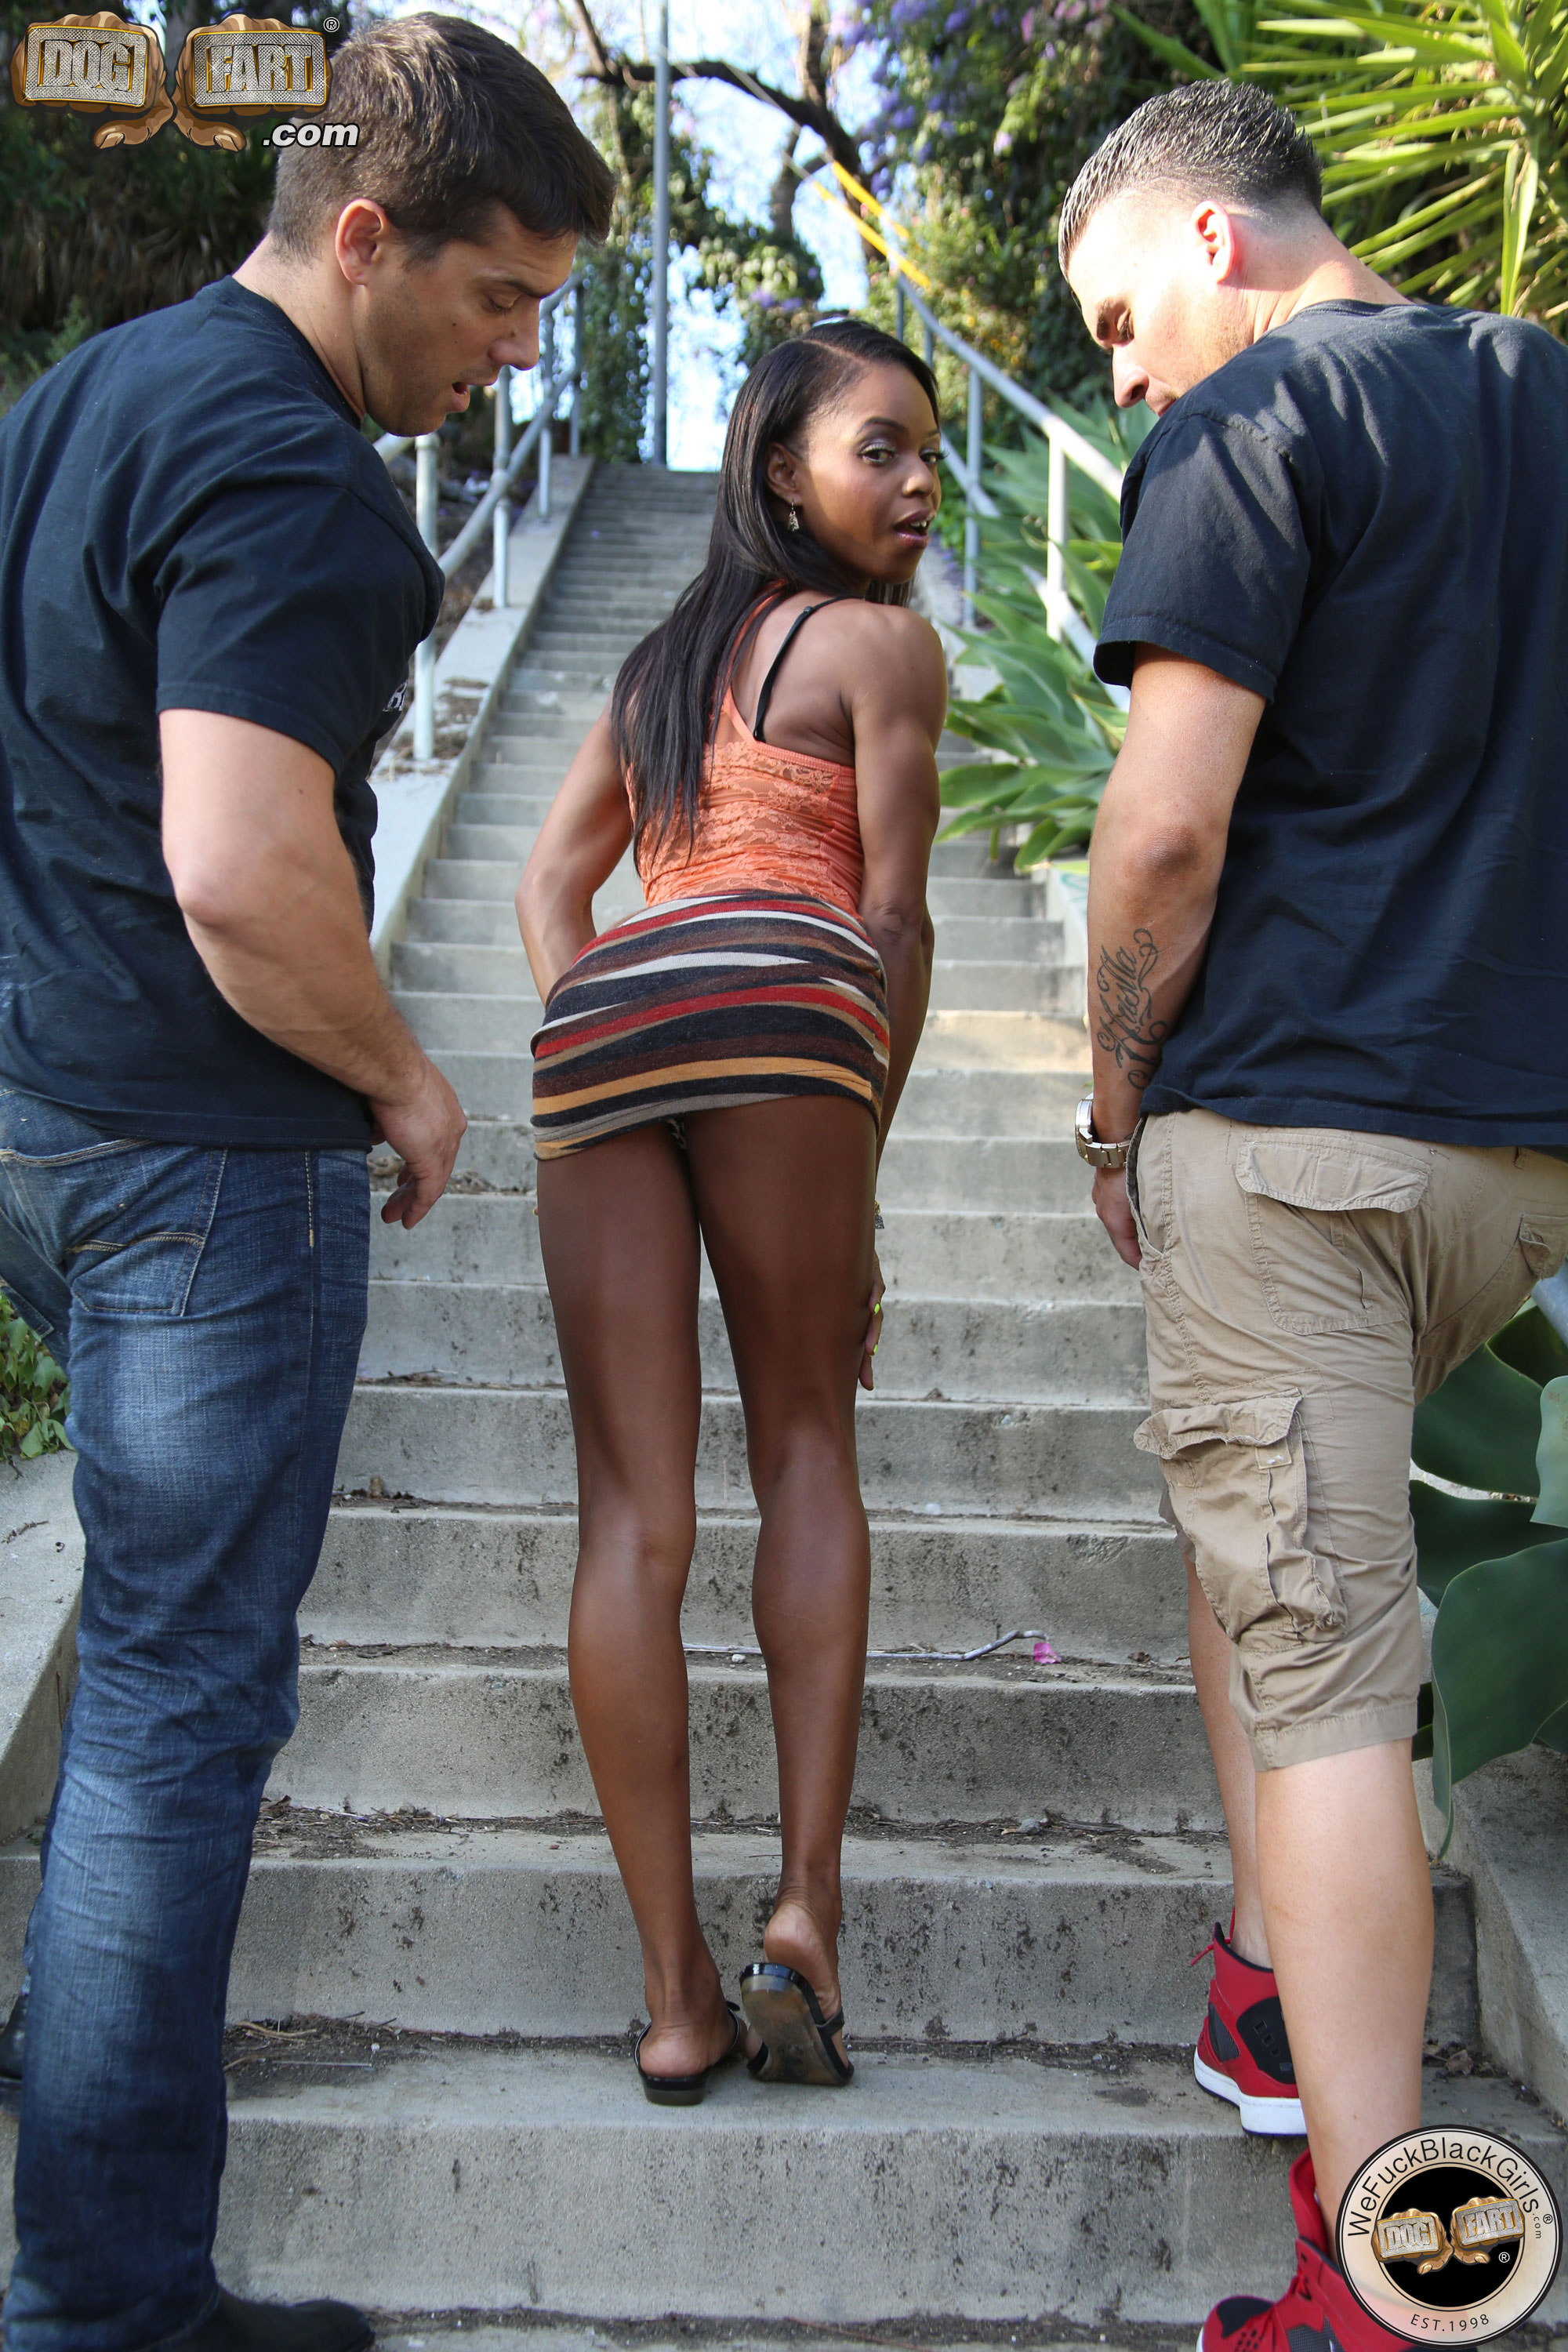 galleries WeFuckBlackGirls content marie luv pic 04